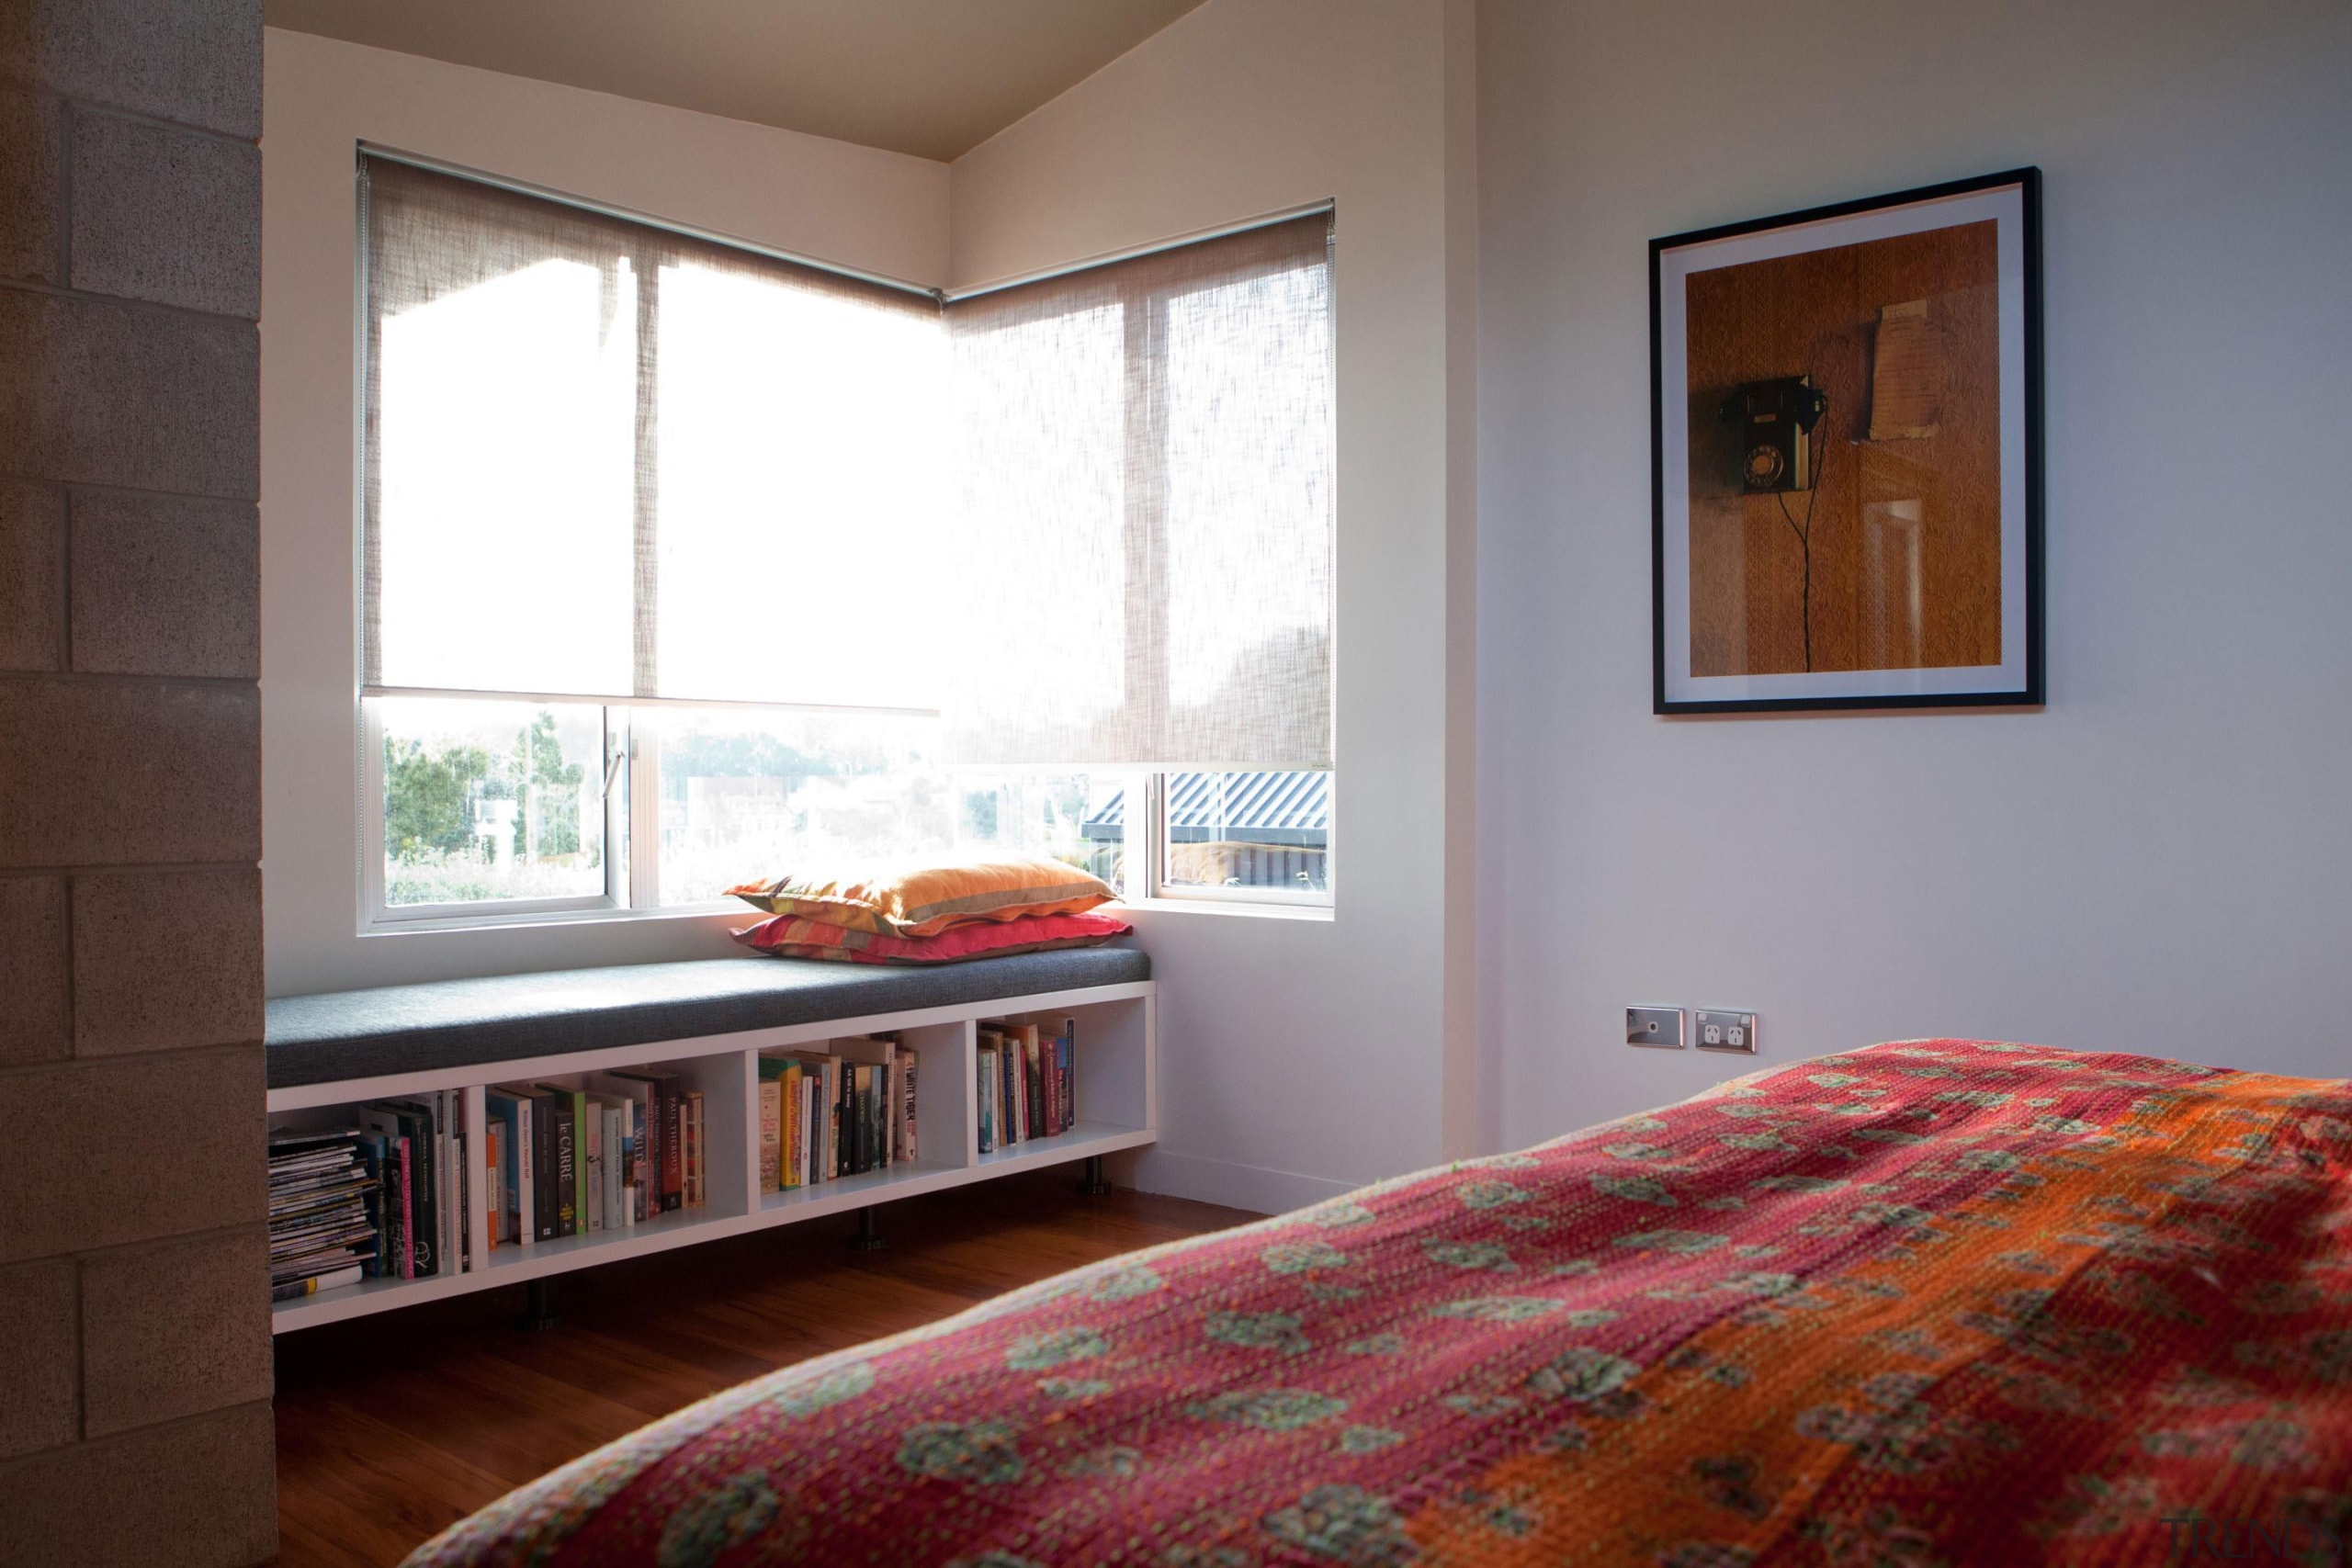 The new window seat in the main bedroom bed, bedroom, ceiling, floor, flooring, furniture, home, interior design, property, real estate, room, window, window covering, wood, gray, red